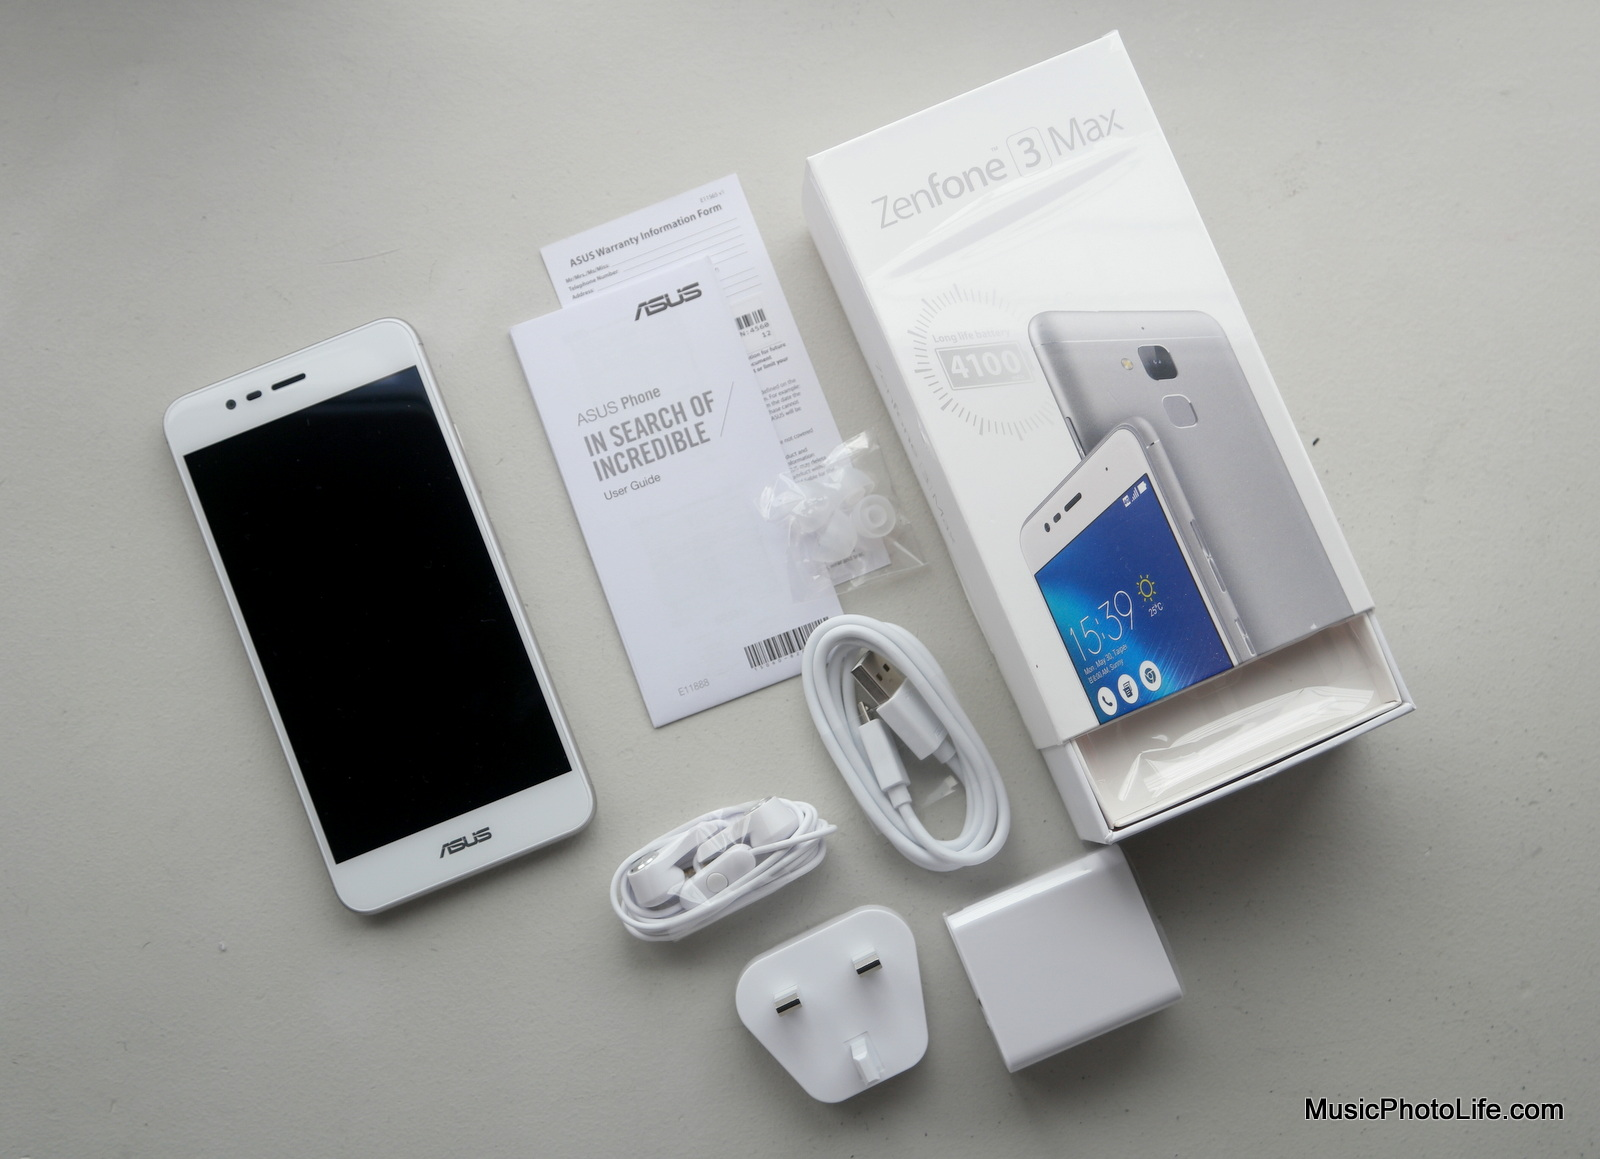 ASUS Zenfone 3 Max unboxing review by musicphotolife.com